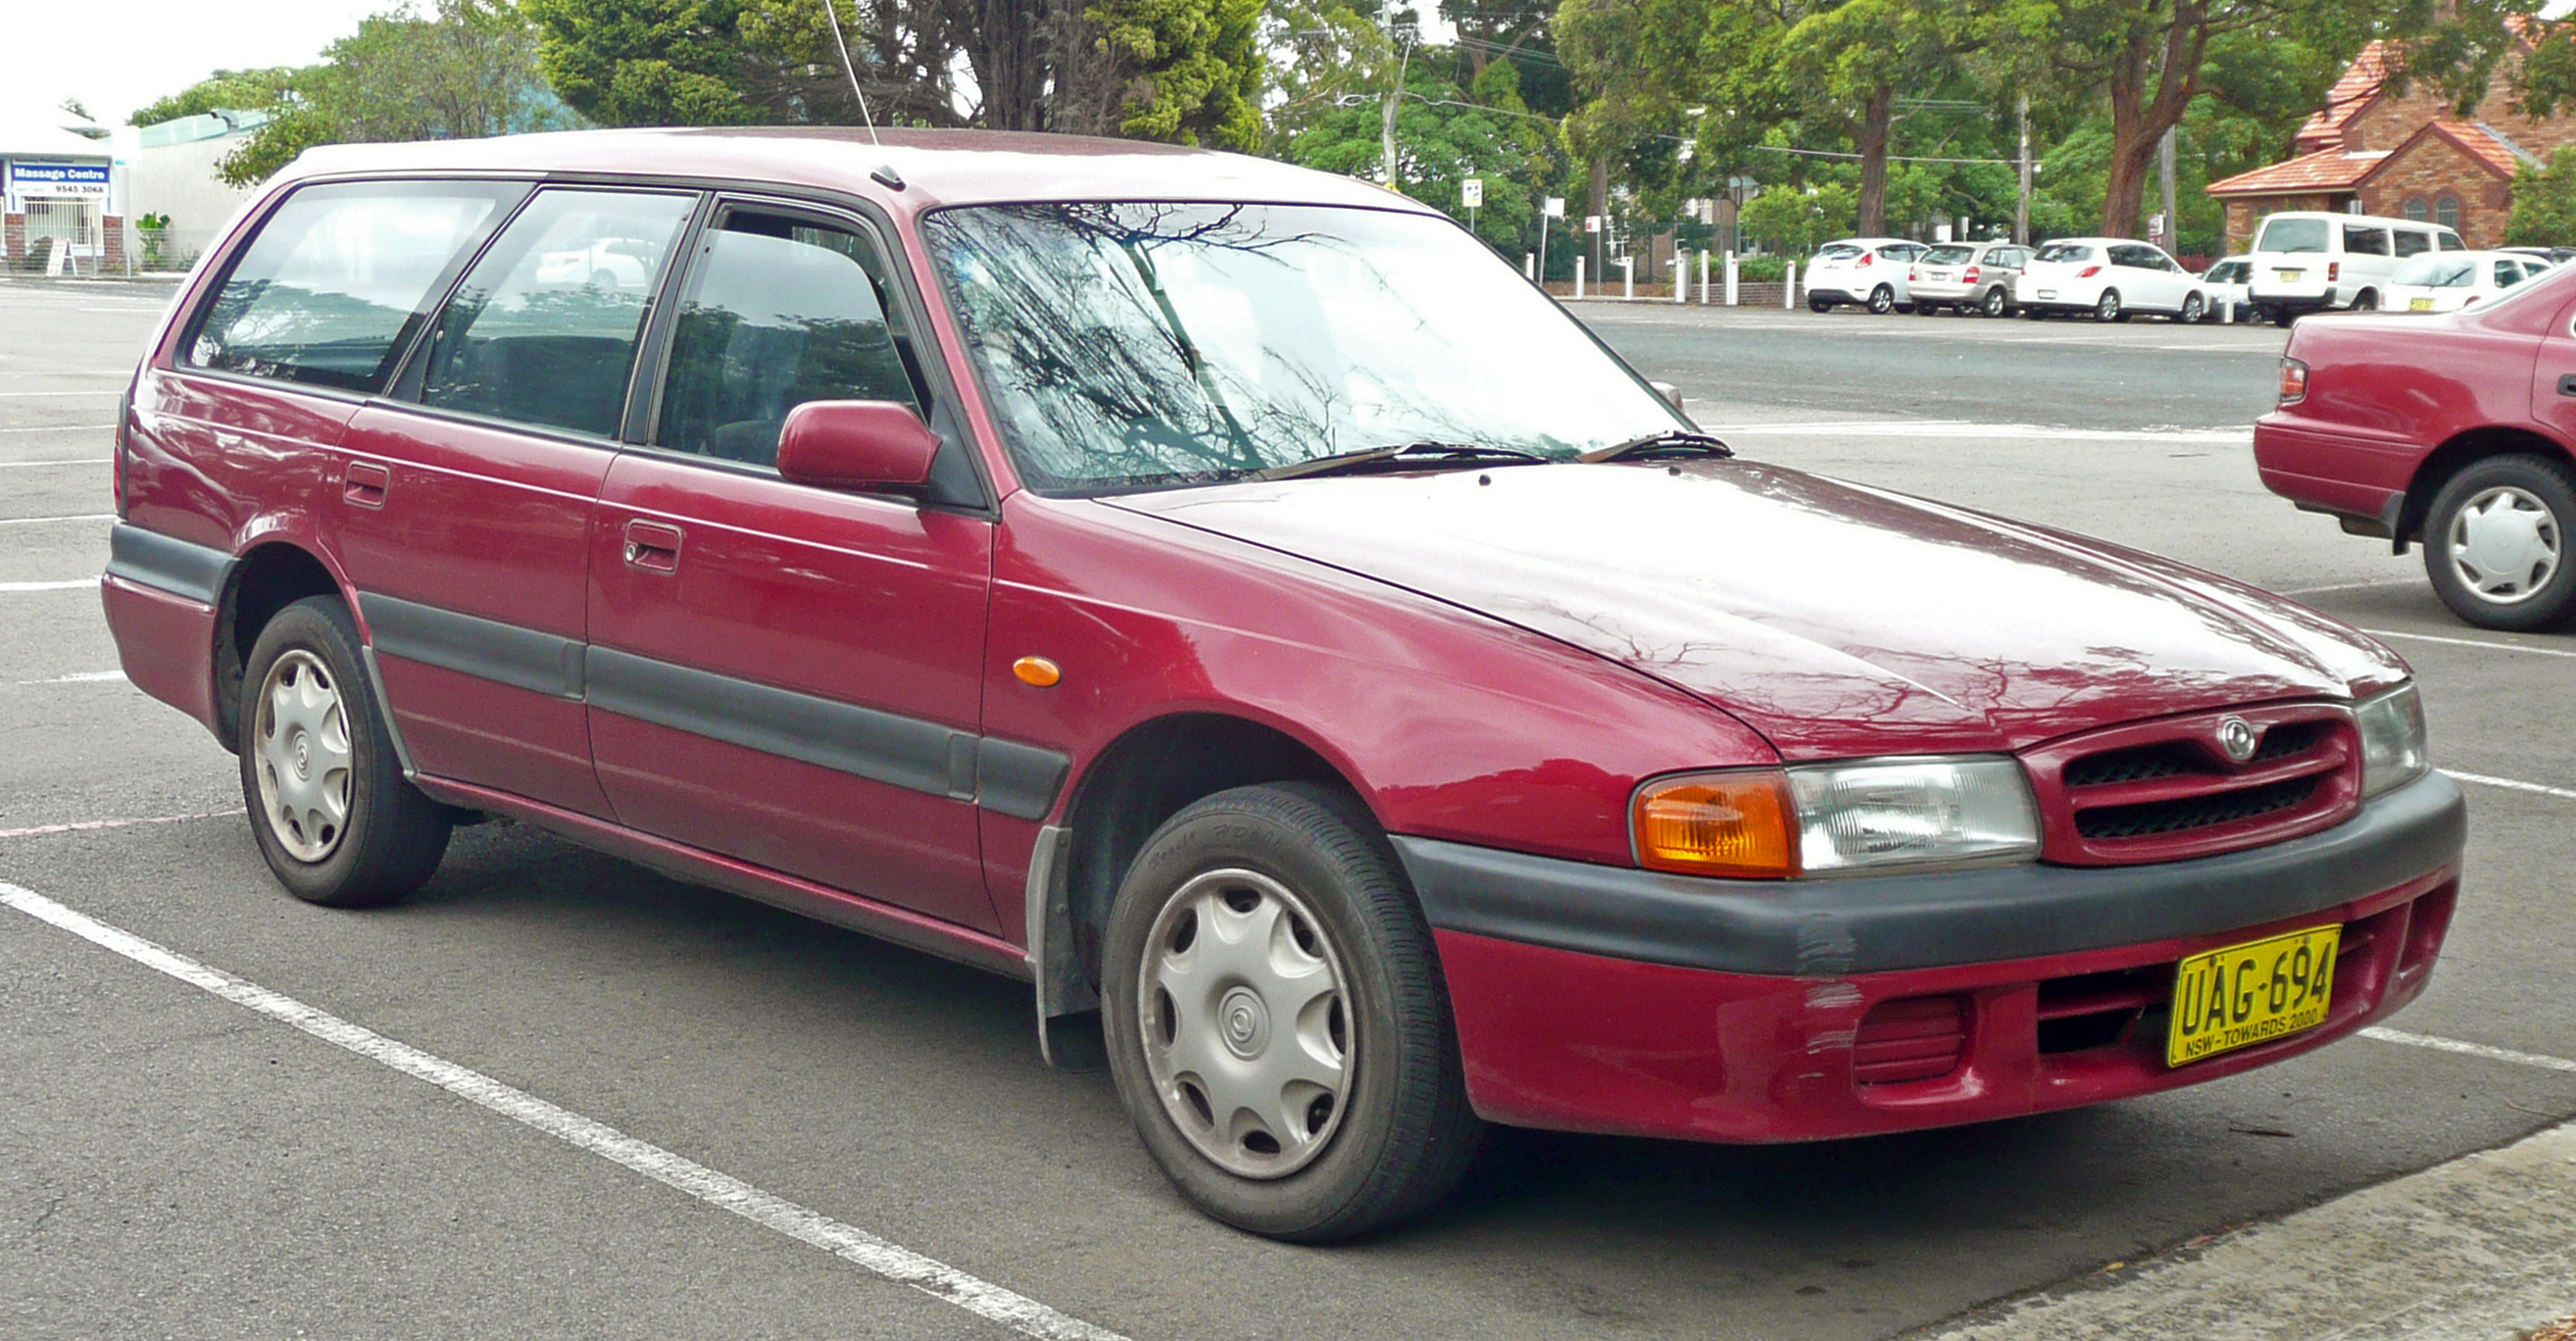 File:1995 Mazda 626 (GV Series 4) station wagon (2006-12